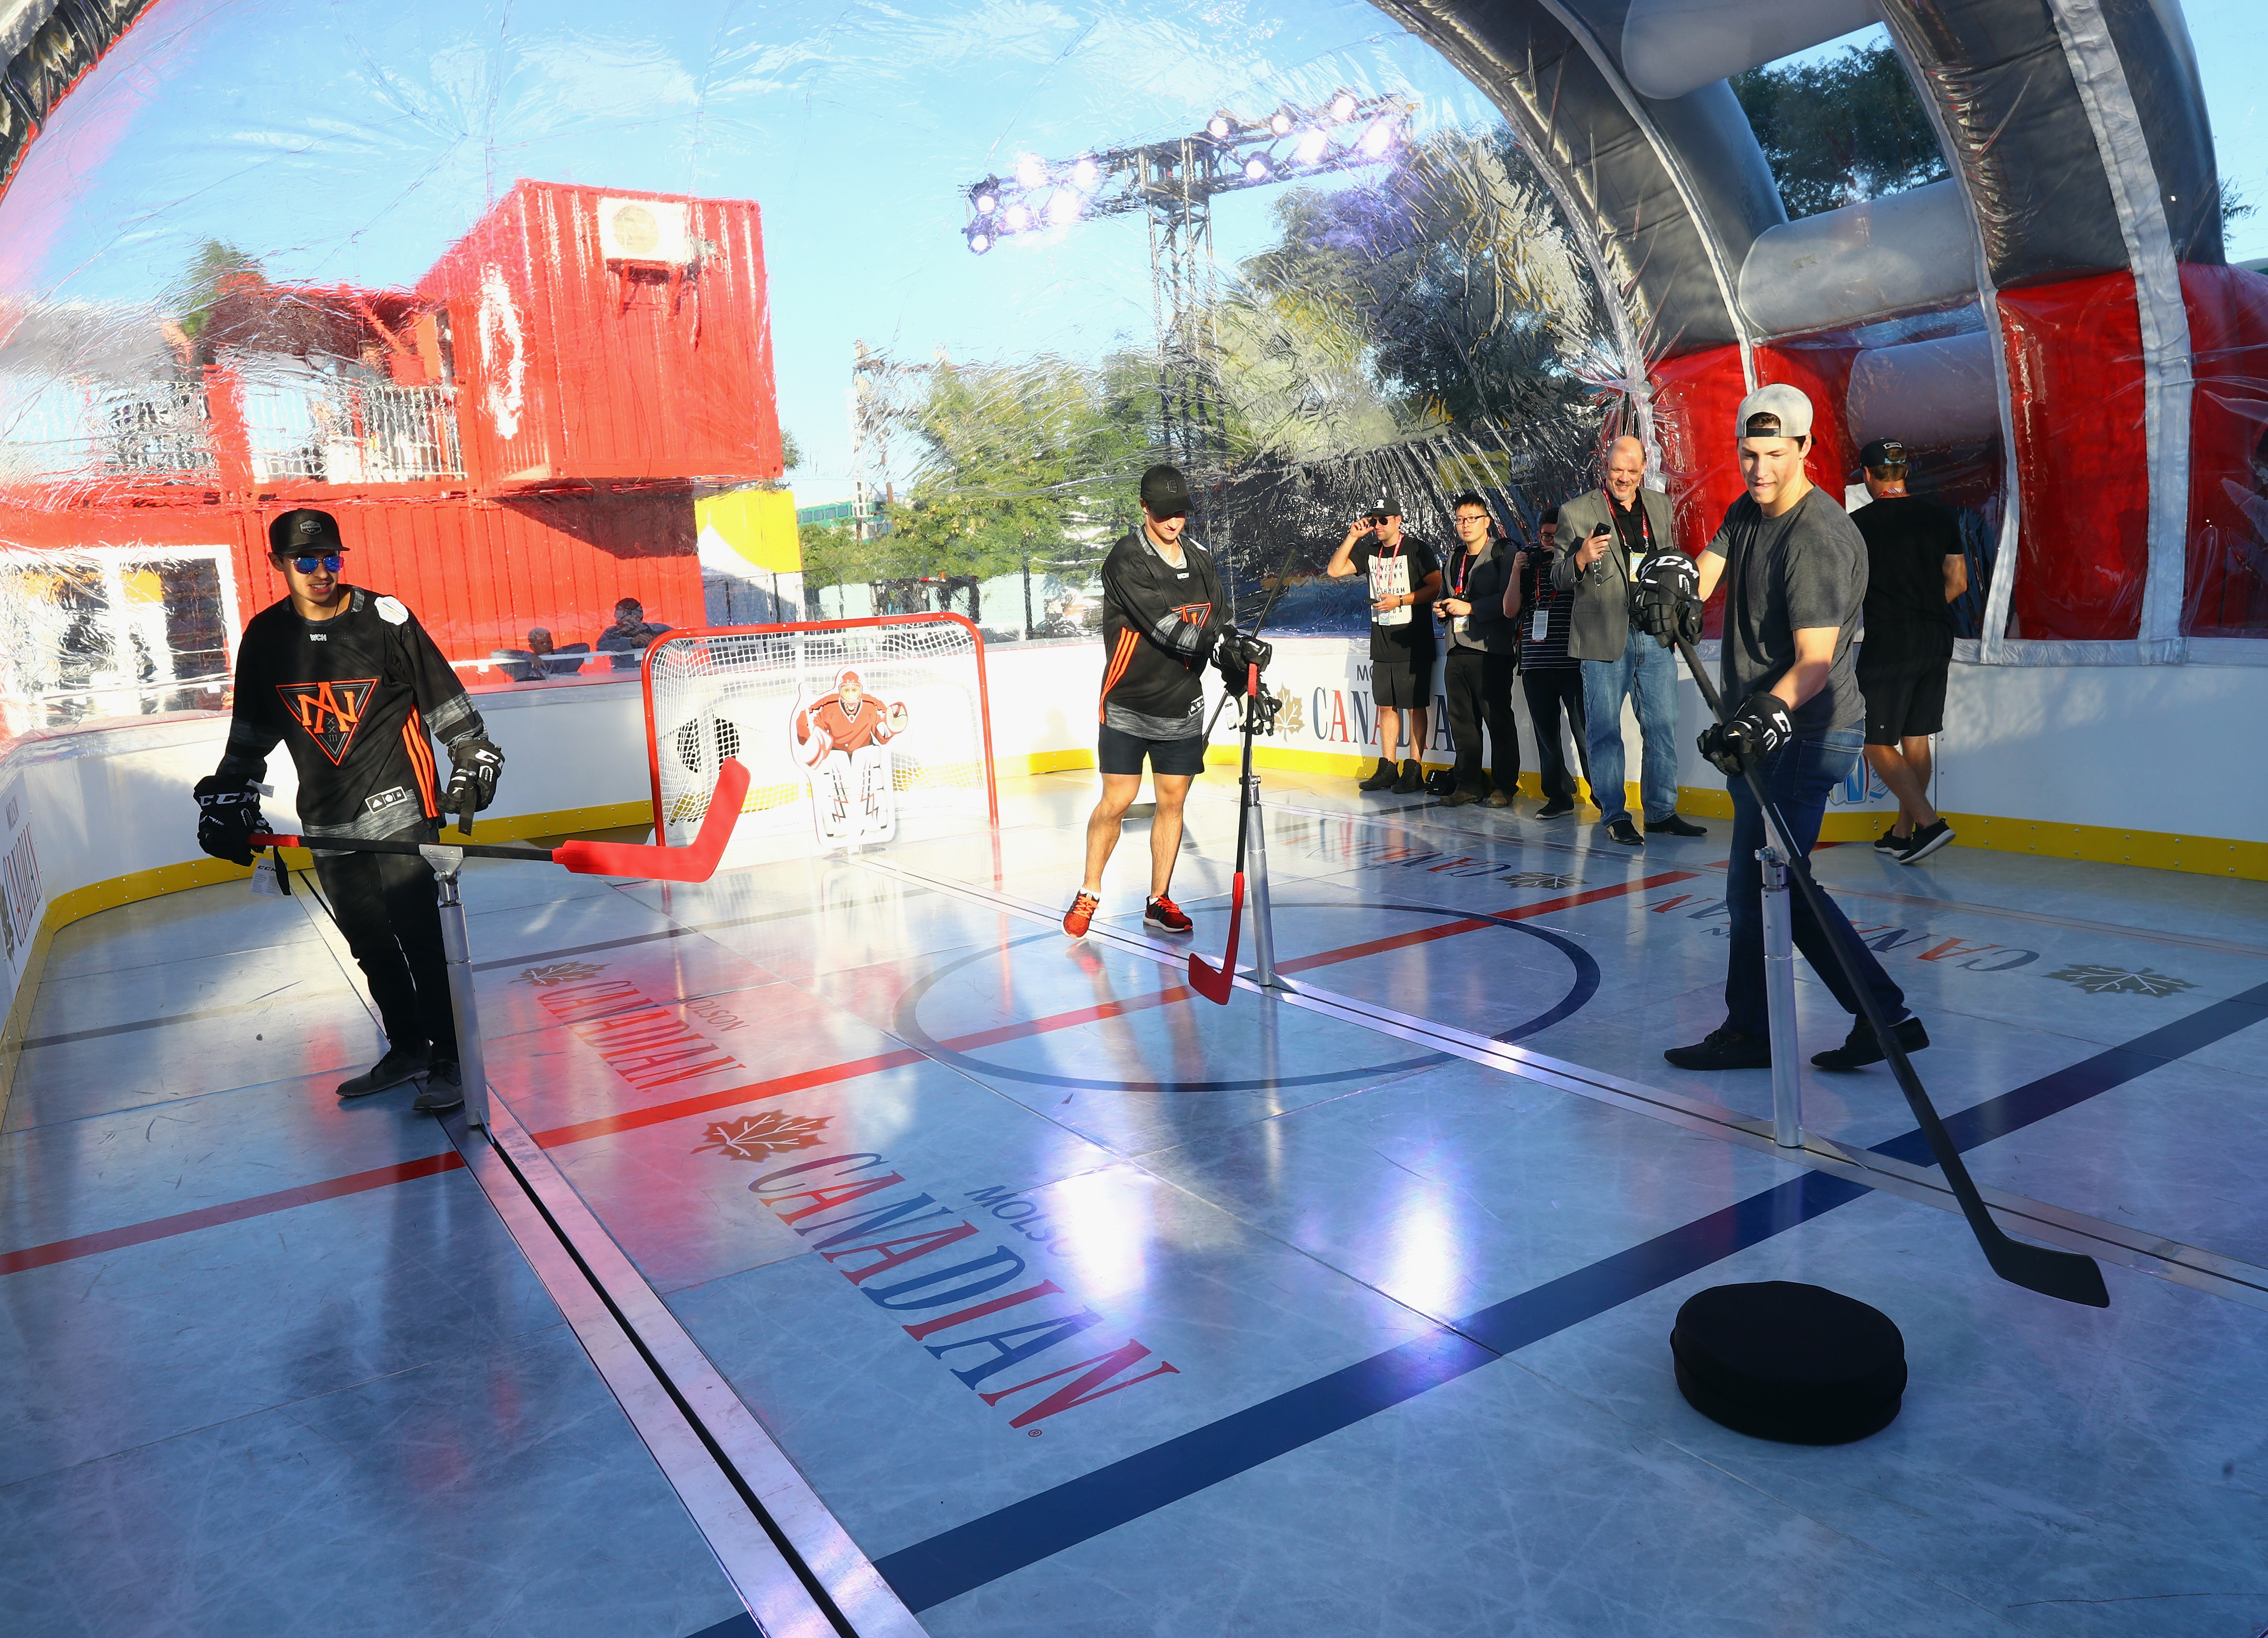 World Cup Of Hockey 2016 - Scotiabank Fan Village Events